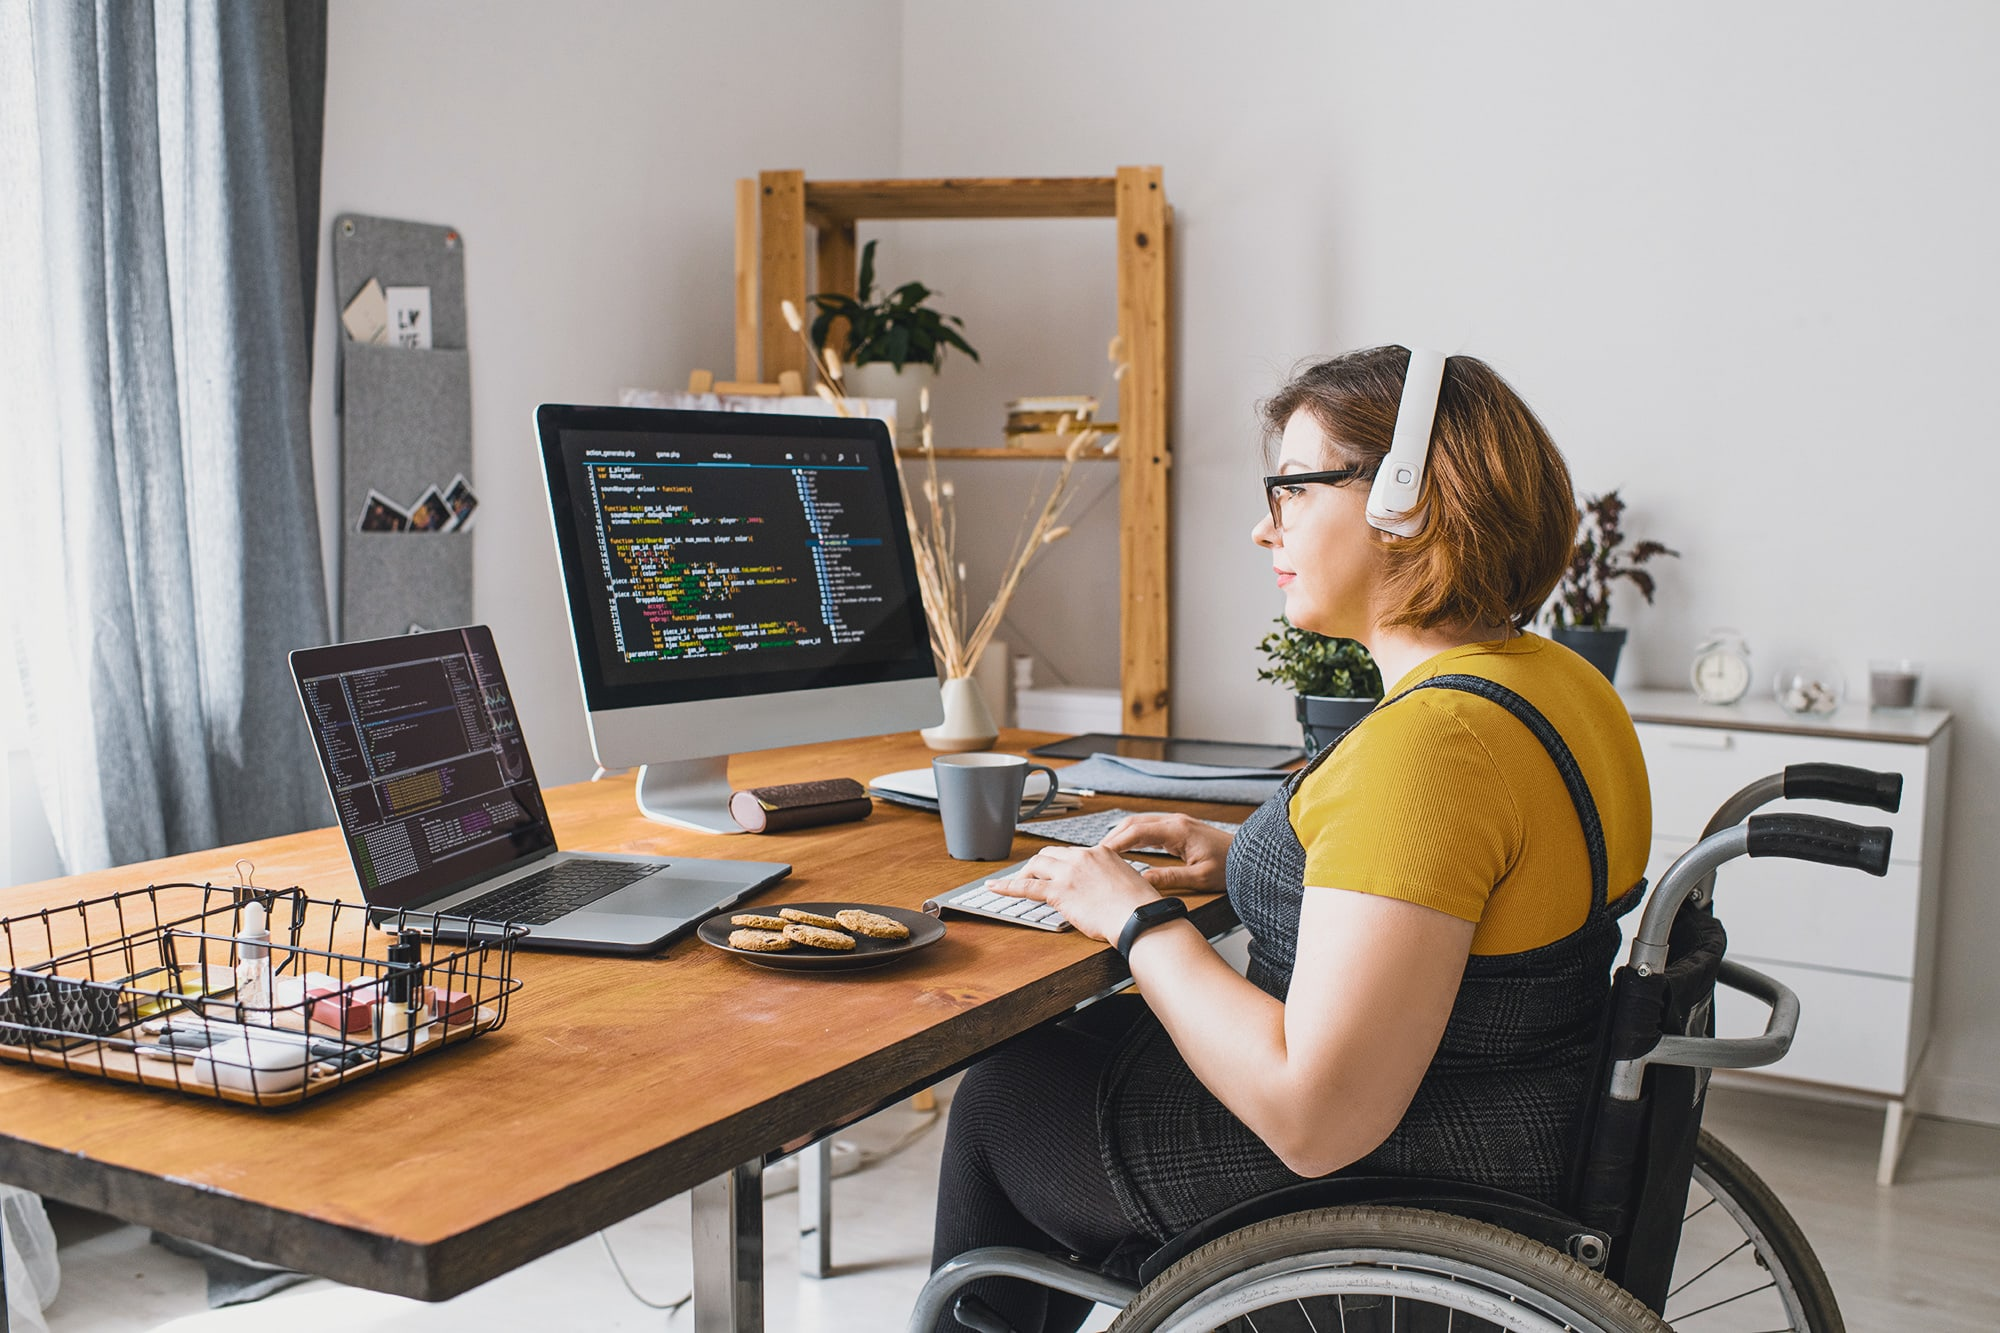 Wheelchair woman working remotely at home